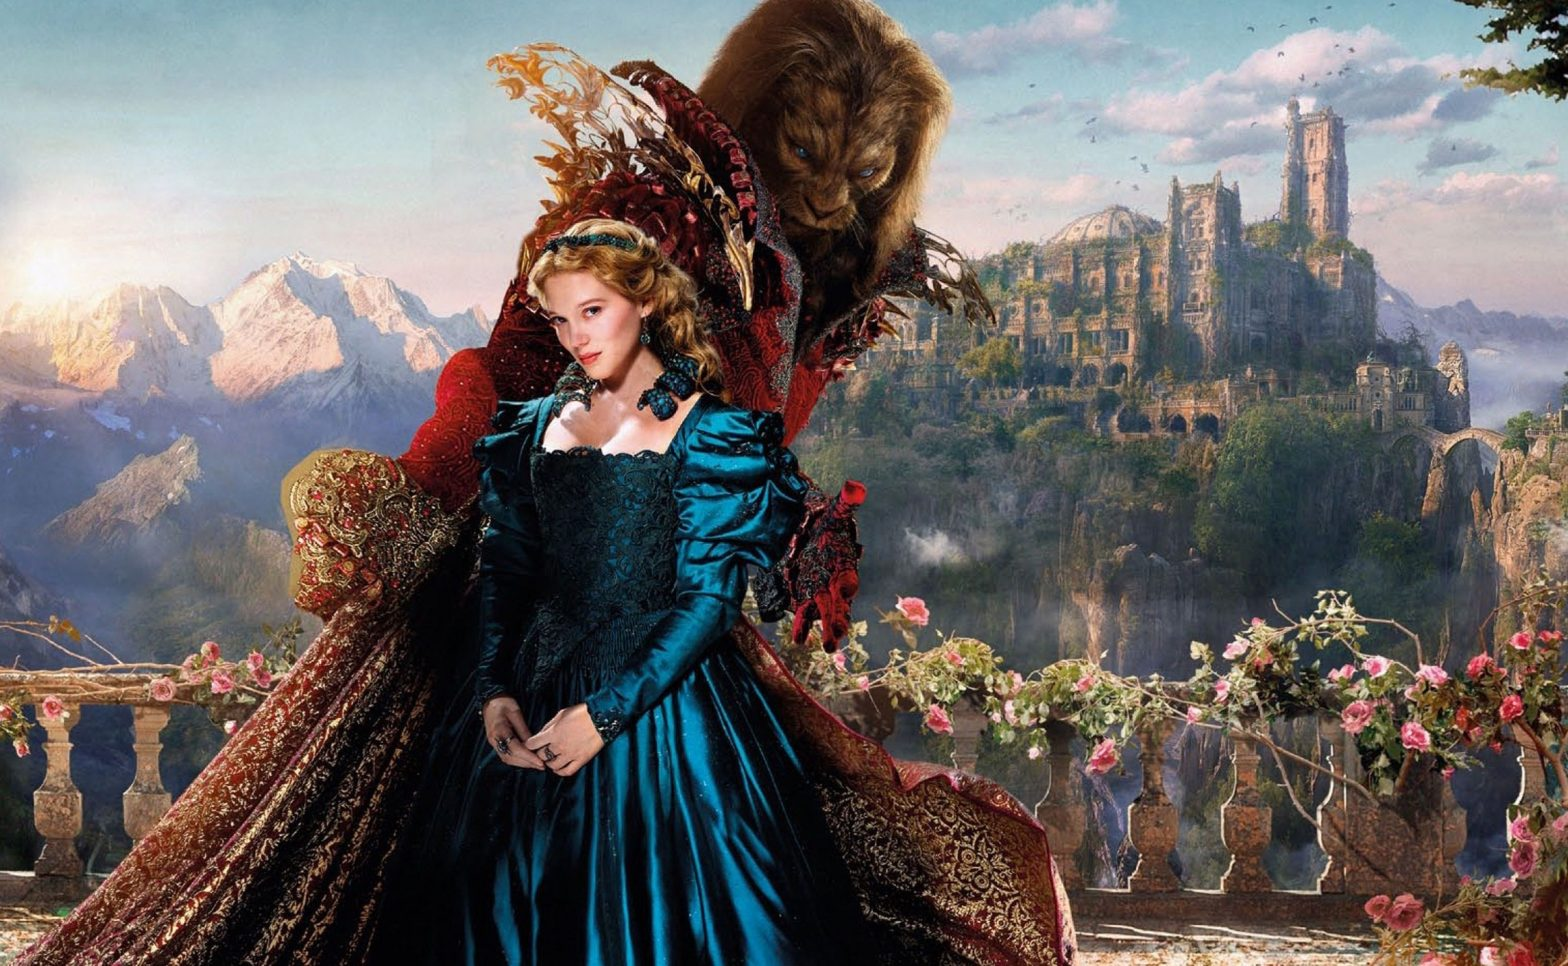 ReviewsThe film stars: Emma Watson as Belle; Dan Stevens as …